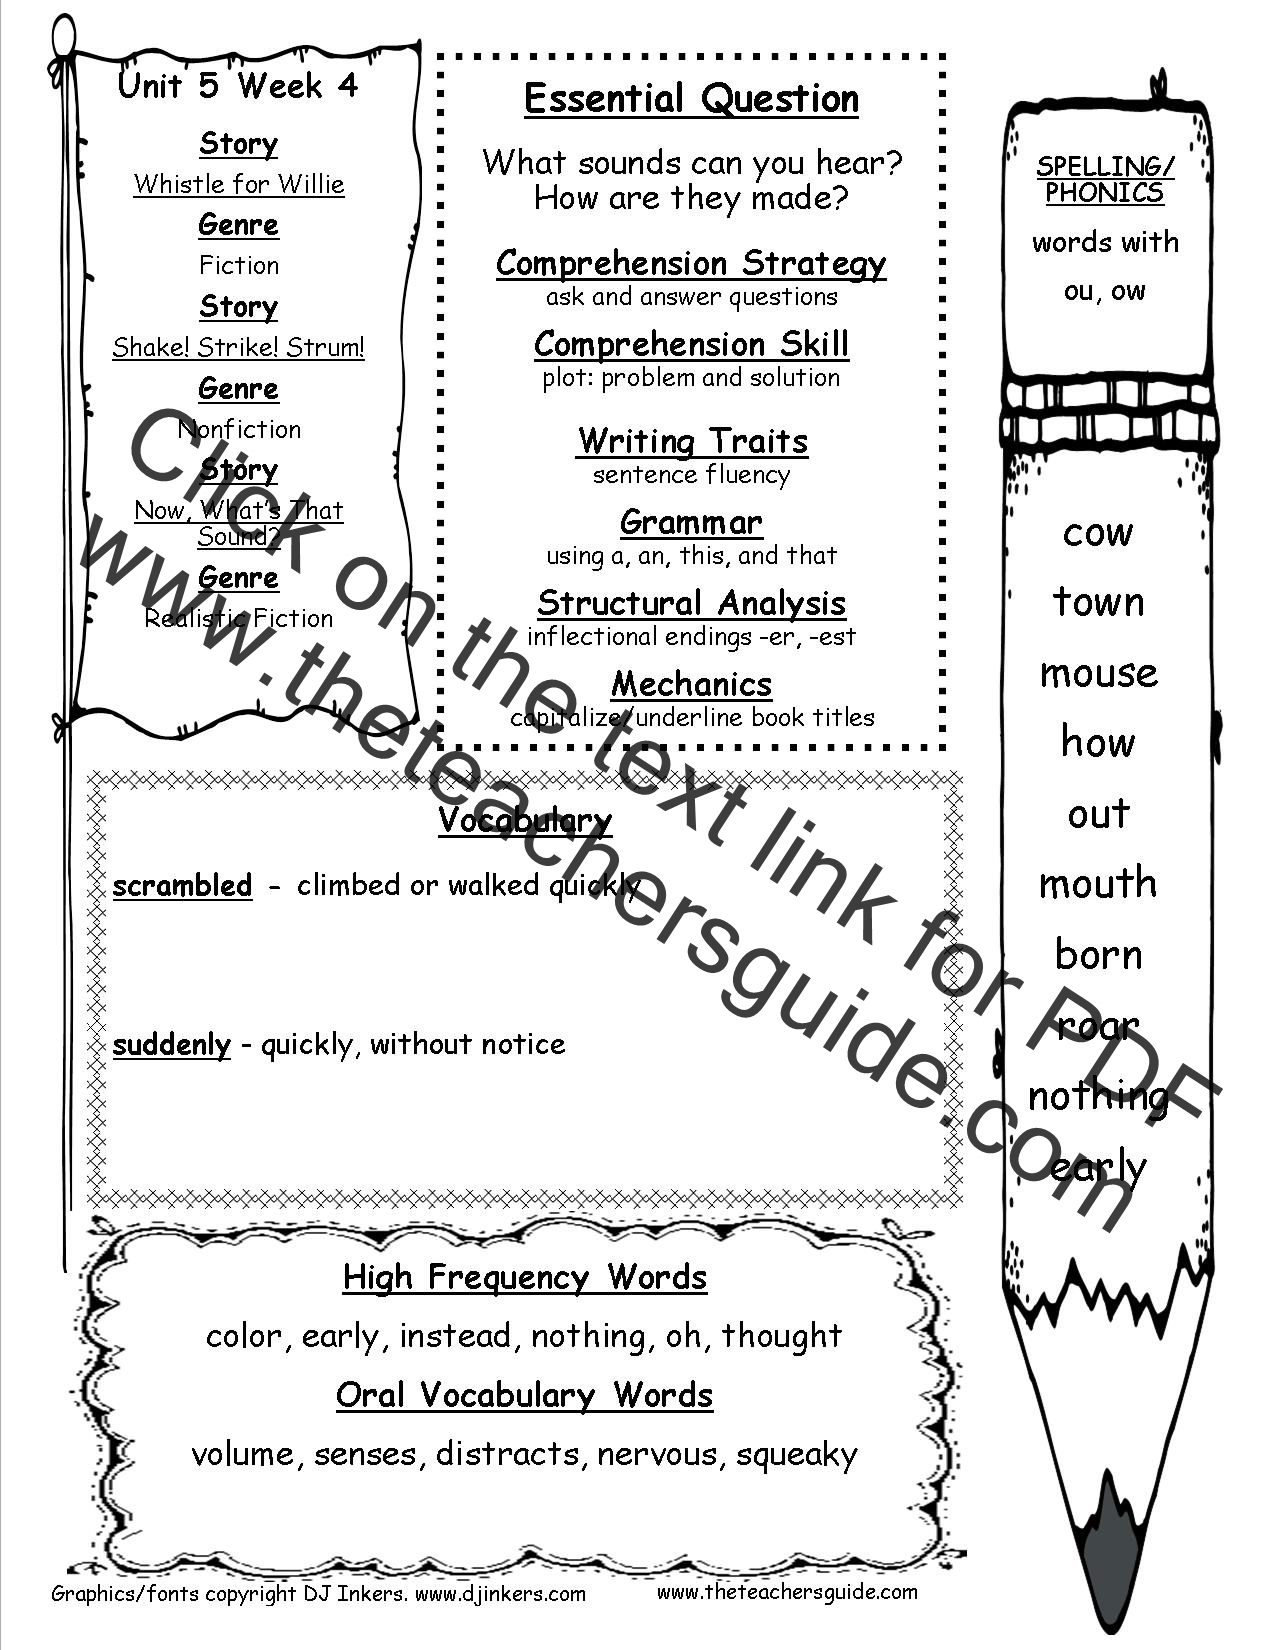 Teach Child How To Read Saxon Phonics 1st Grade Spelling List